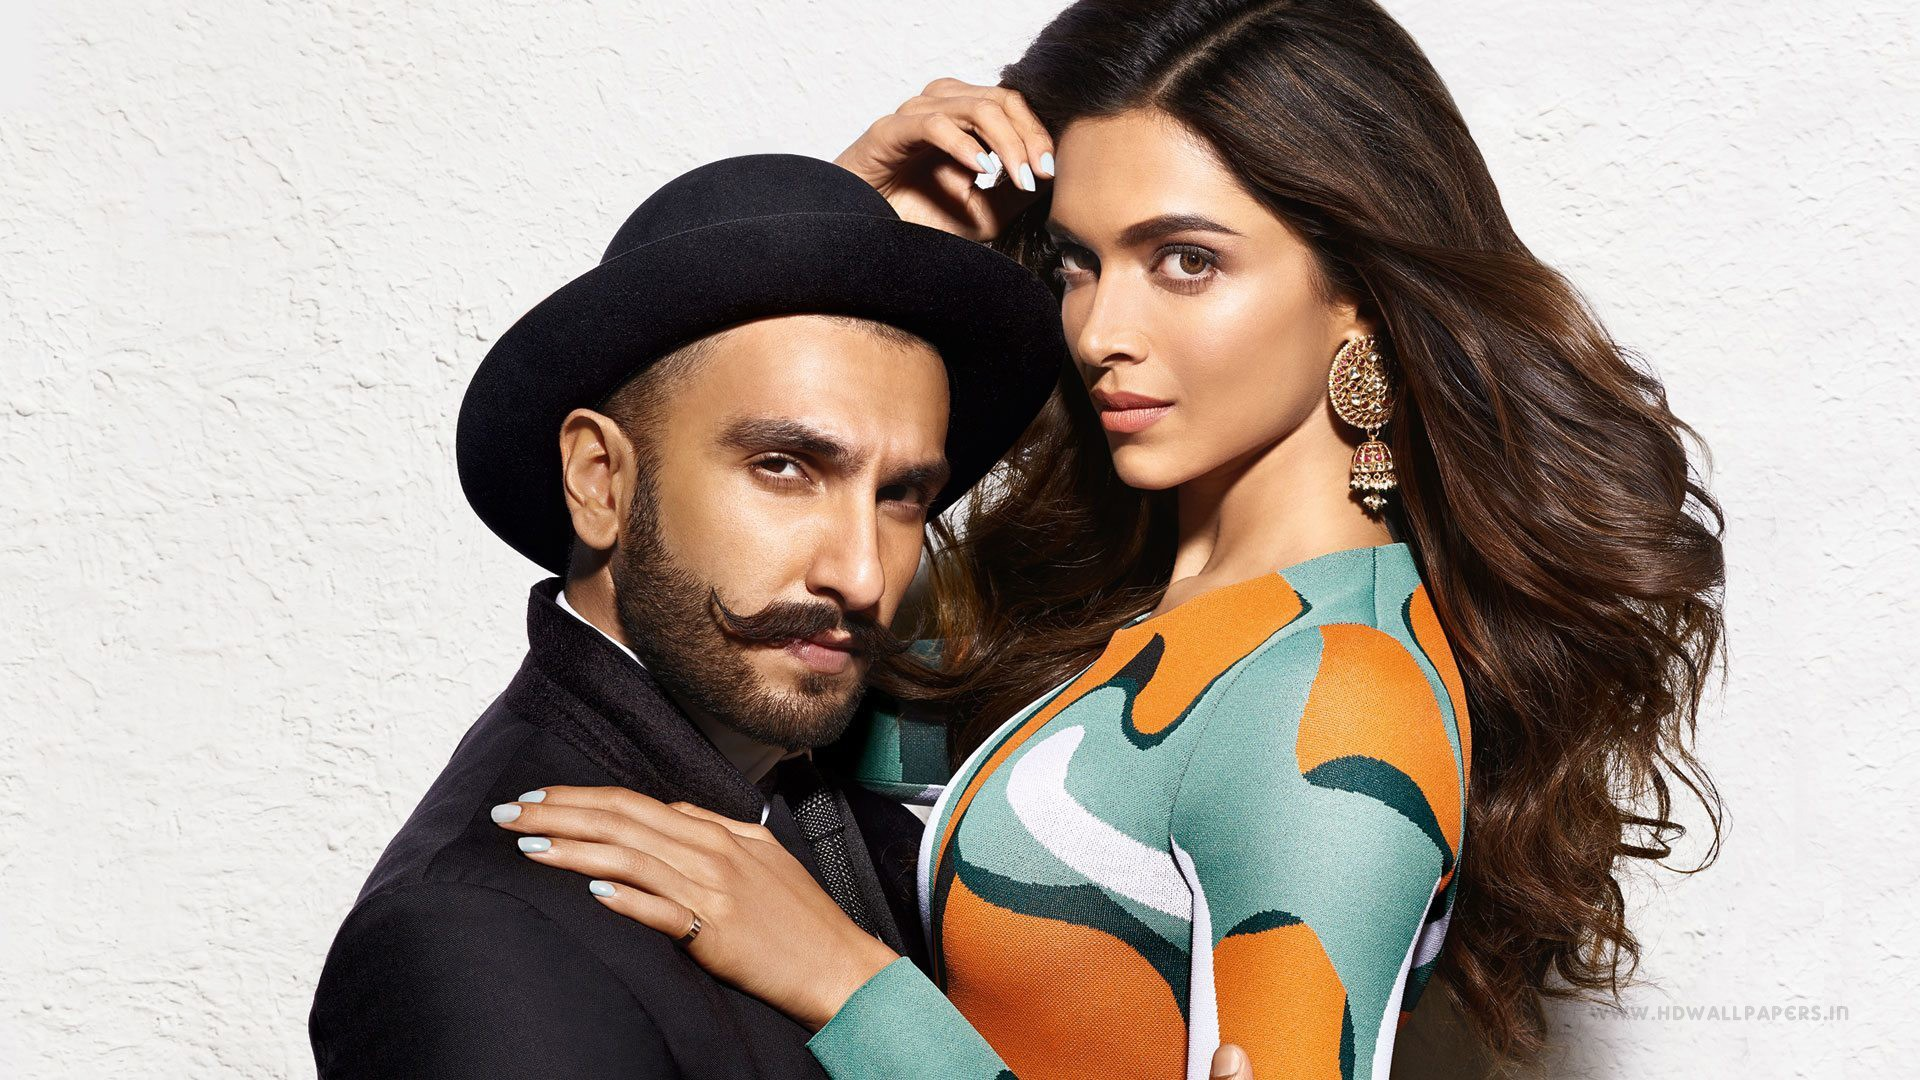 Deepika Padukone Hd Wallpapers For Iphone Ranveer Singh Deepika Padukone Wallpapers Hd Wallpapers